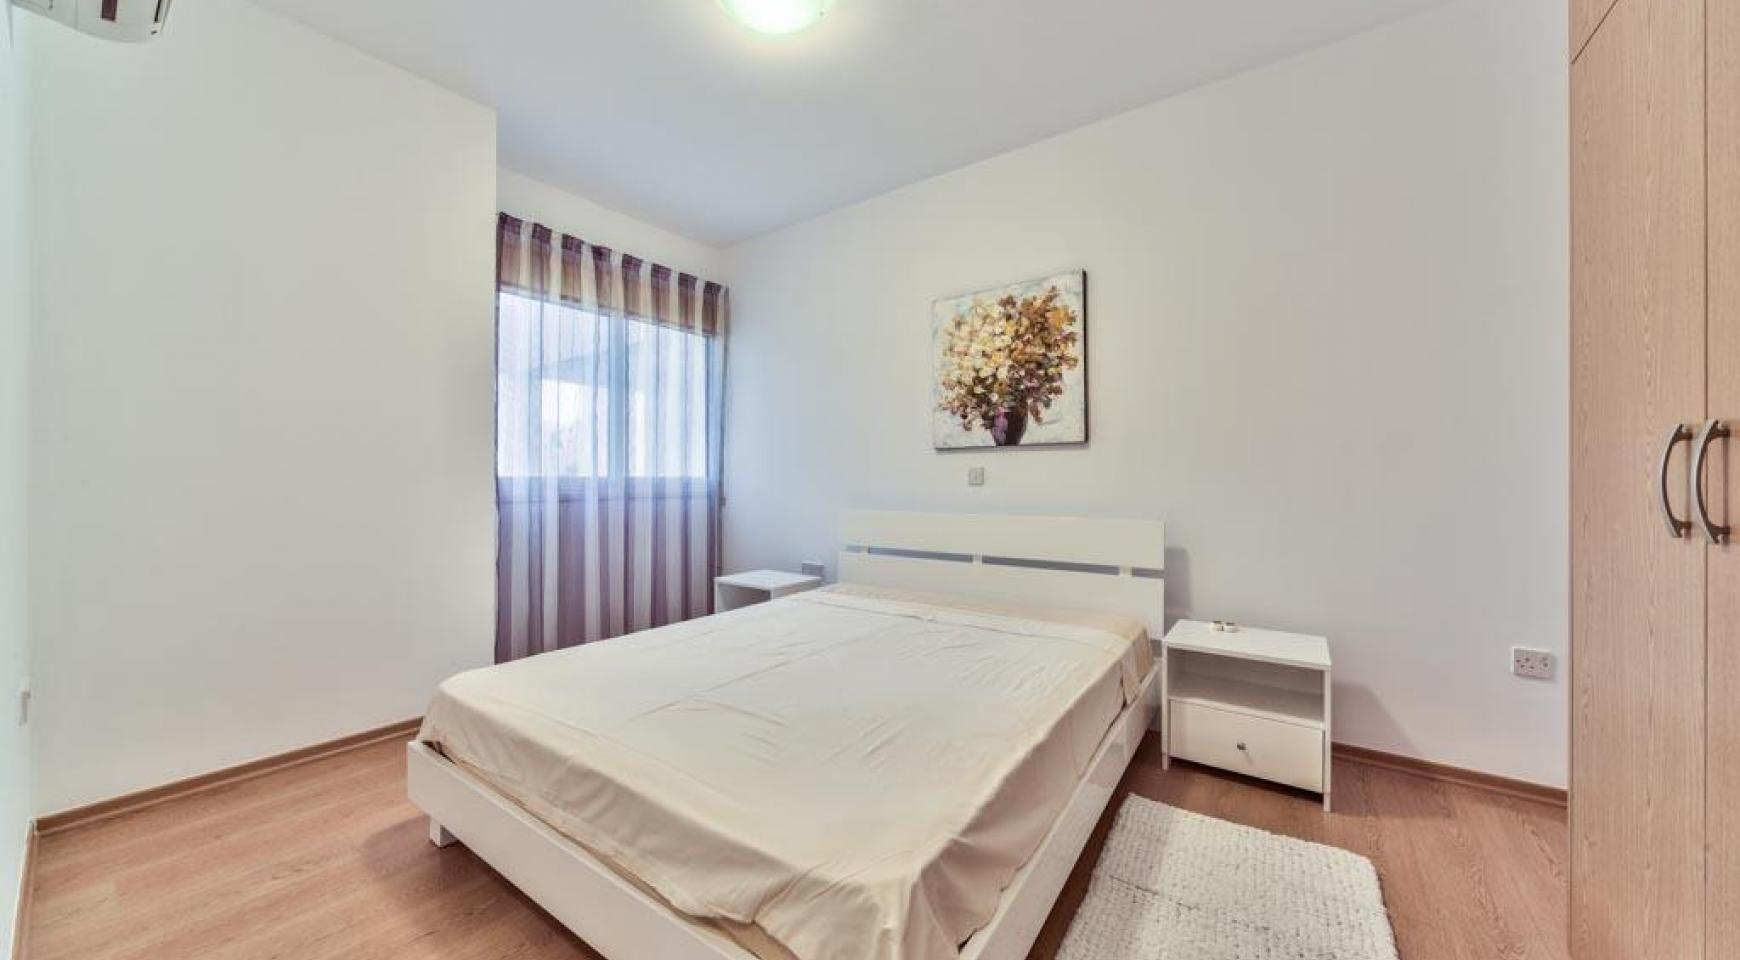 3 Bedroom Apartment in the Centre of the Tourist Area - 10